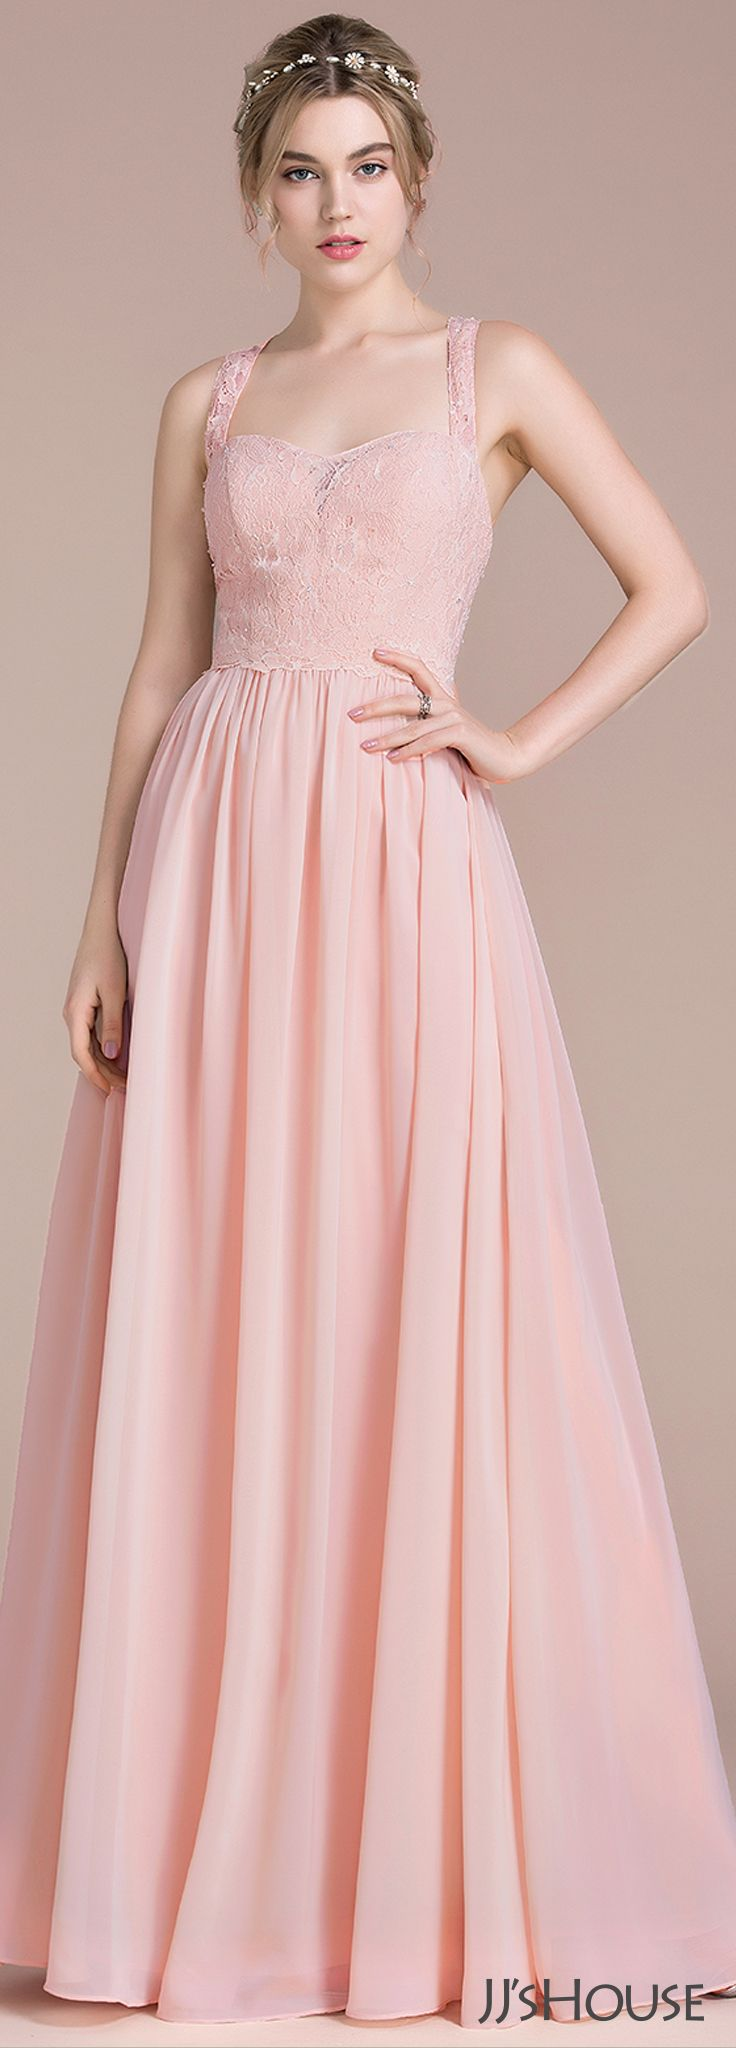 A-Line/Princess Floor-Length Chiffon Lace Bridesmaid Dress With ...